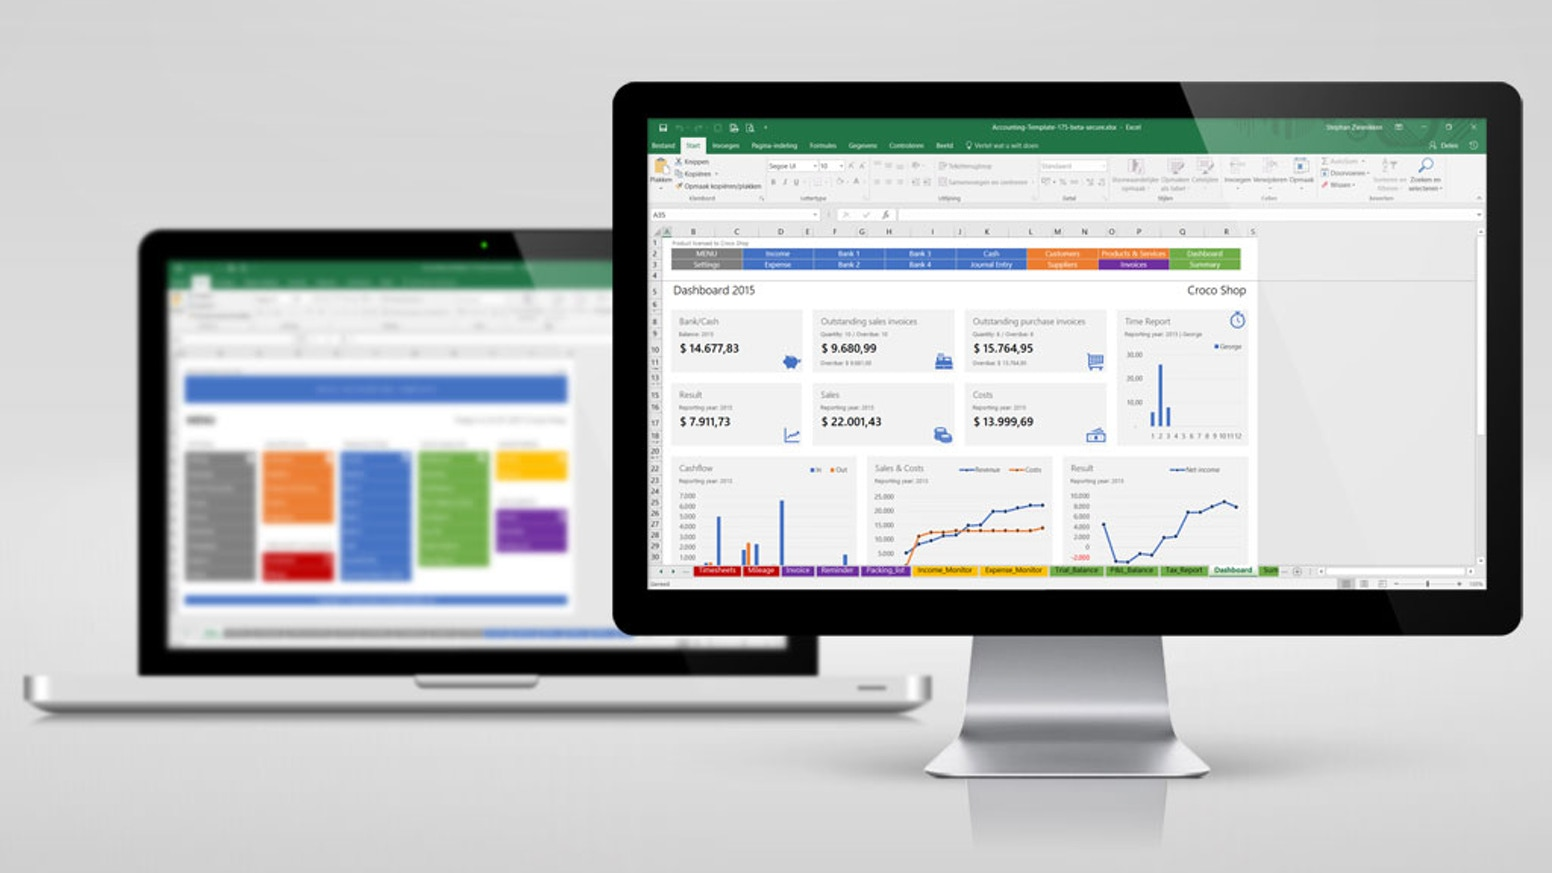 Excel accounting template by stephan zwanikken kickstarter the all in one accounting solution in excel for small business owners wajeb Image collections